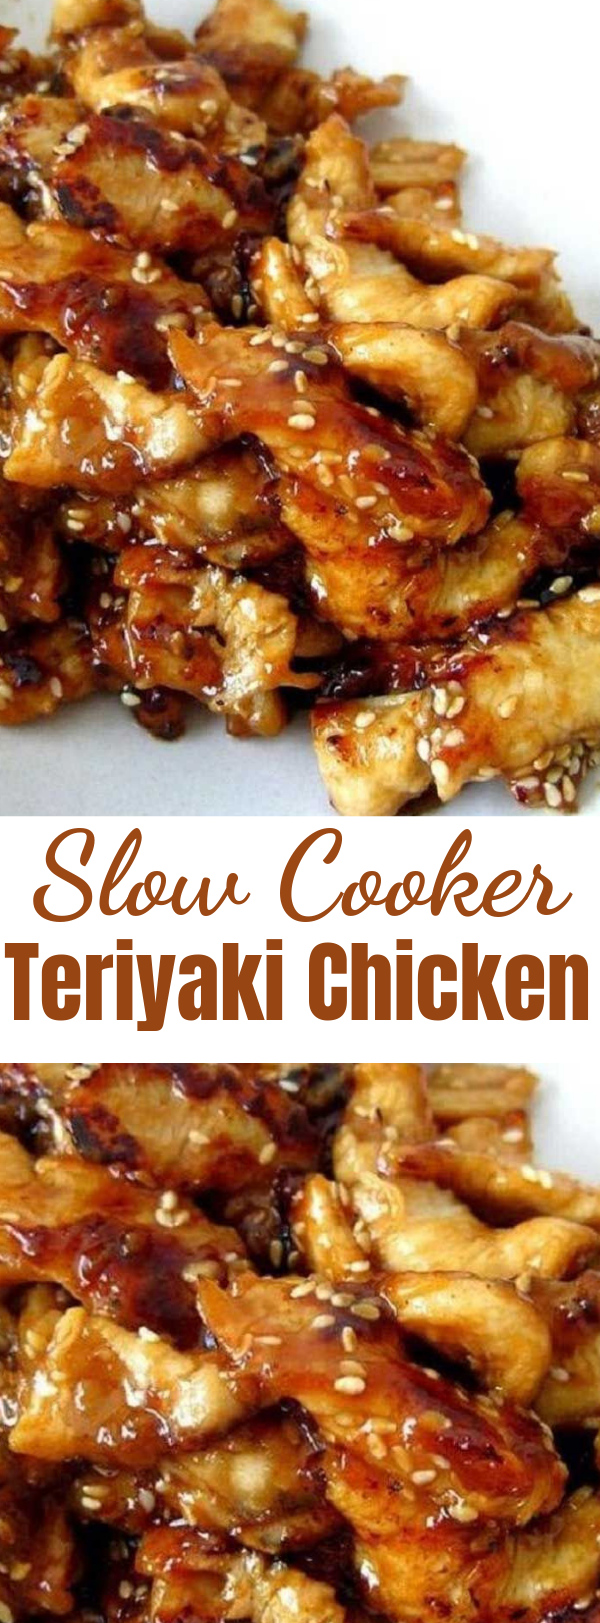 Slow Cooker Teriyaki Chicken - Serve this Slow Cooker Teriyaki Chicken over rice, you don't want any of that delicious, sticky sauce going to waste. And because we are all trying to be healthier this time of year make sure to serve lots of fresh stir fried vegetables on the side. #slowcooker #crockpot #teriyaki #chicken #dinner